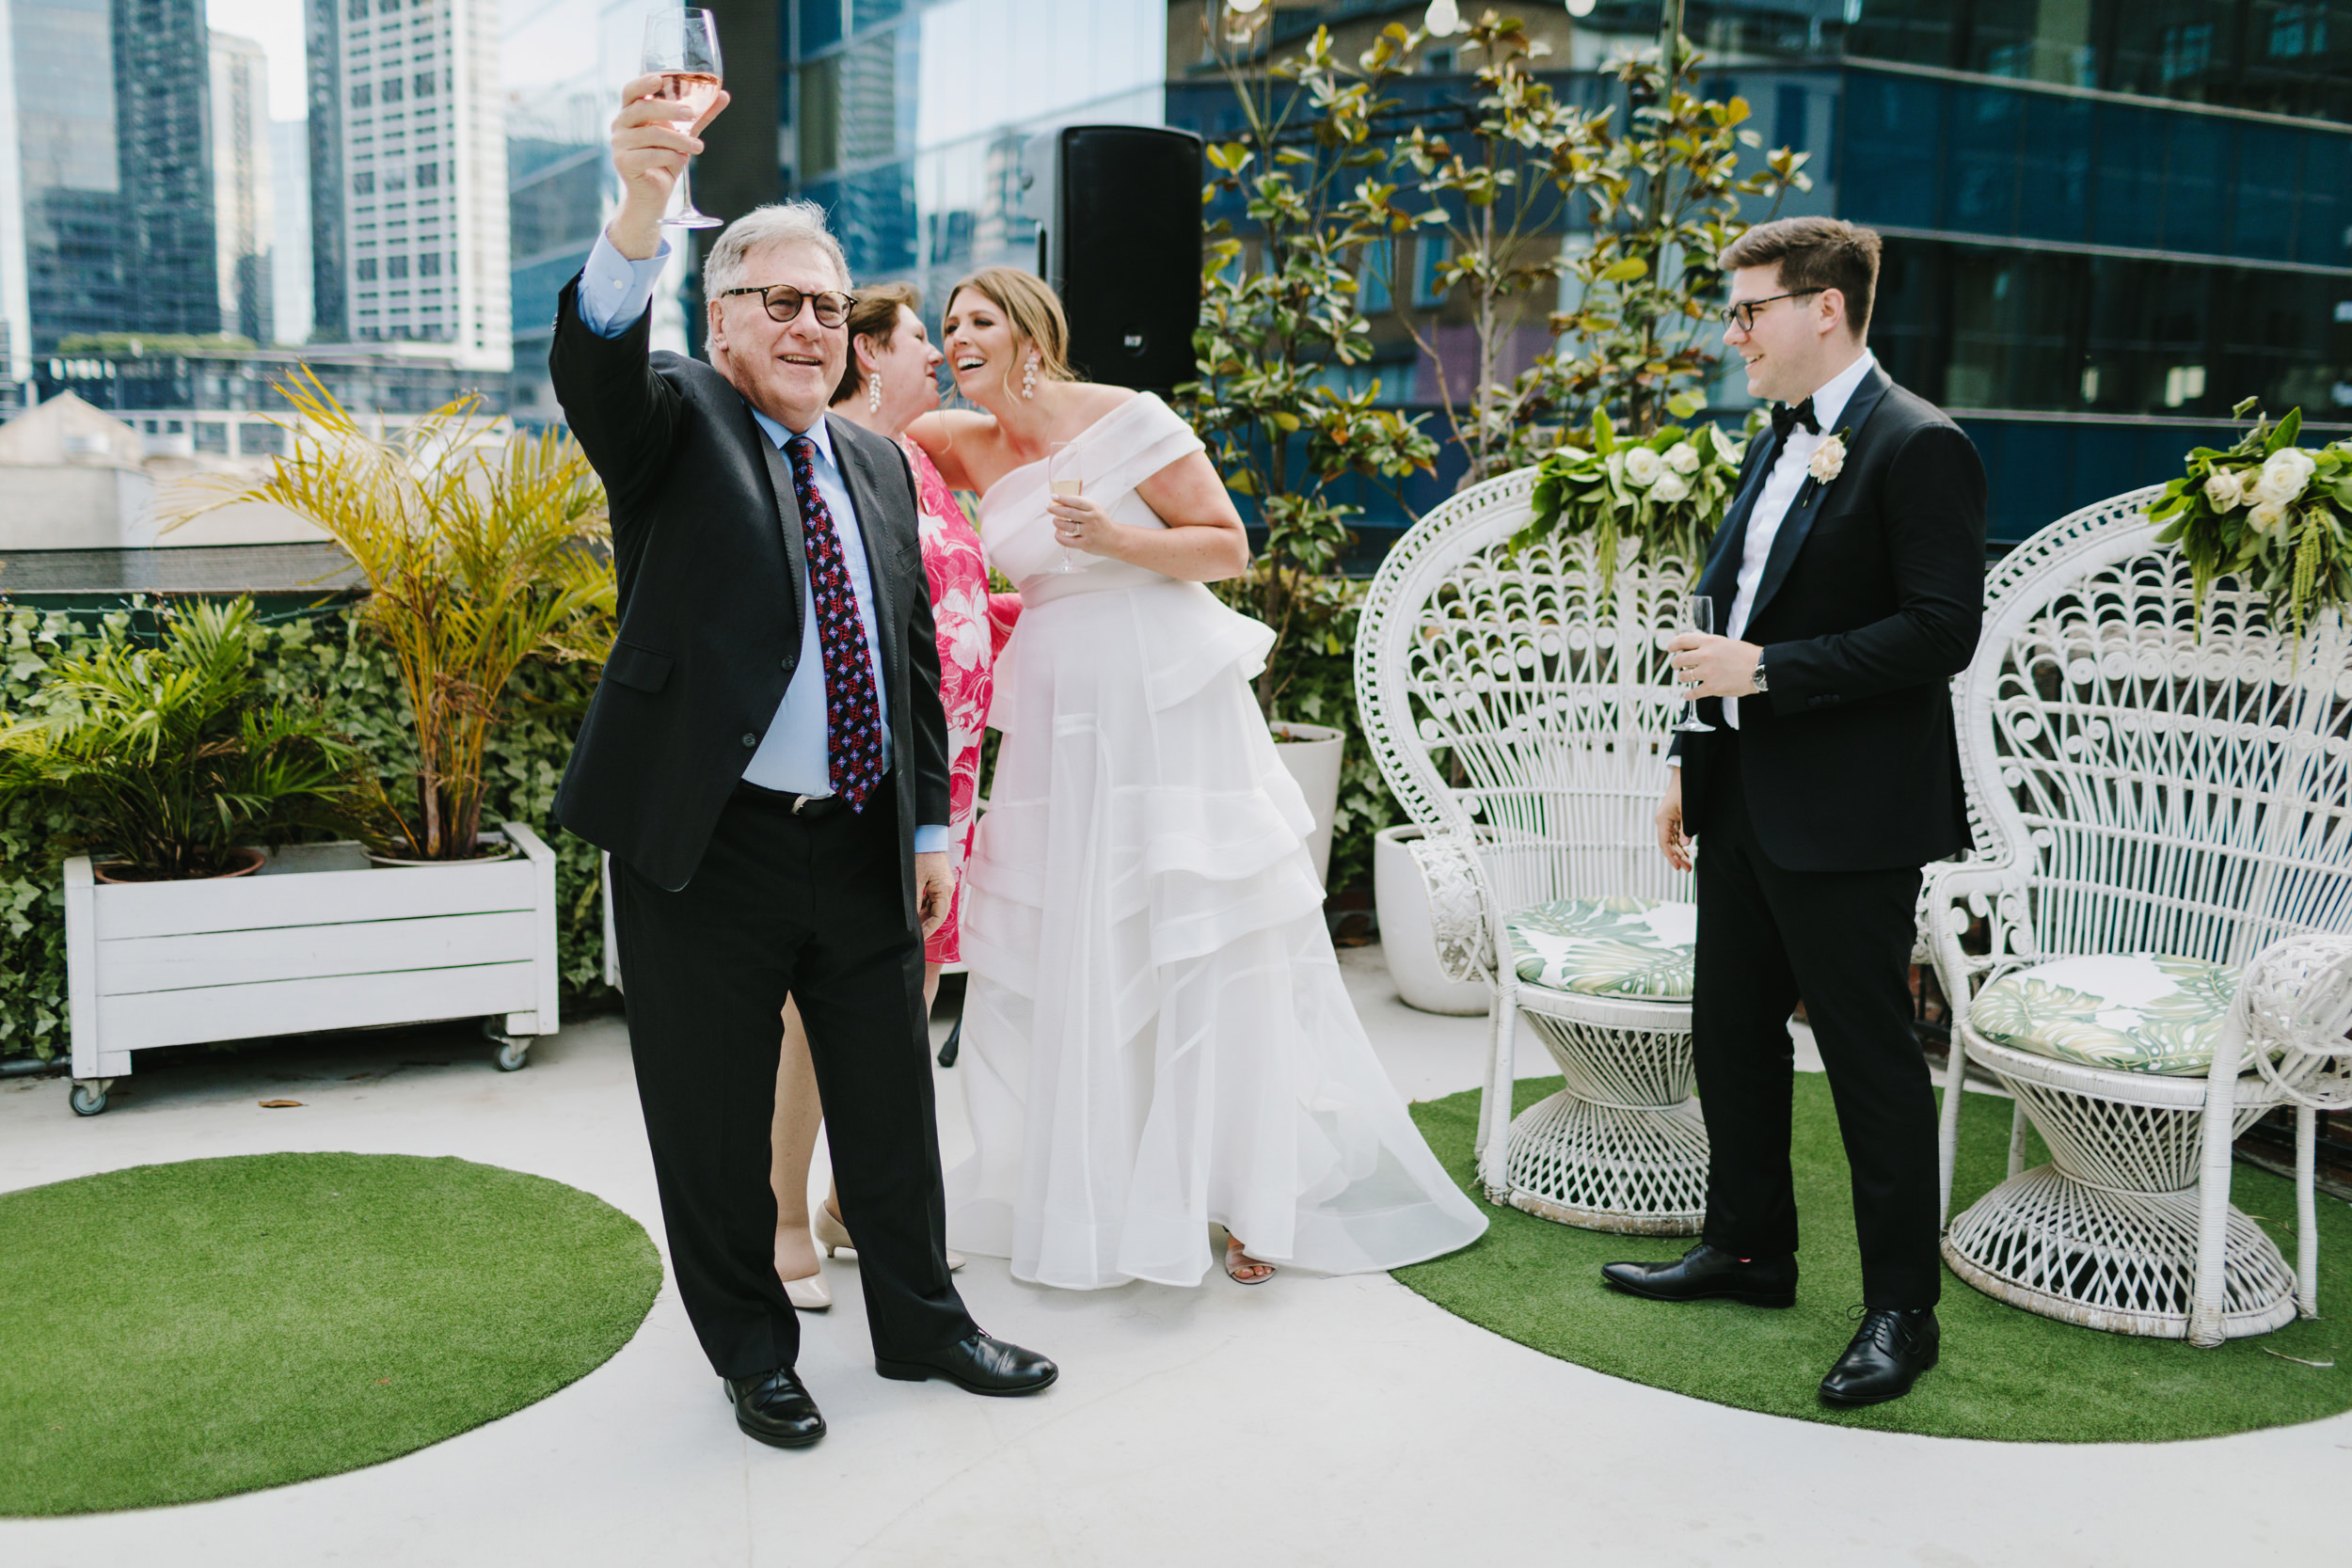 Melbourne_City_Rooftop_Wedding_Tyson_Brigette109.JPG